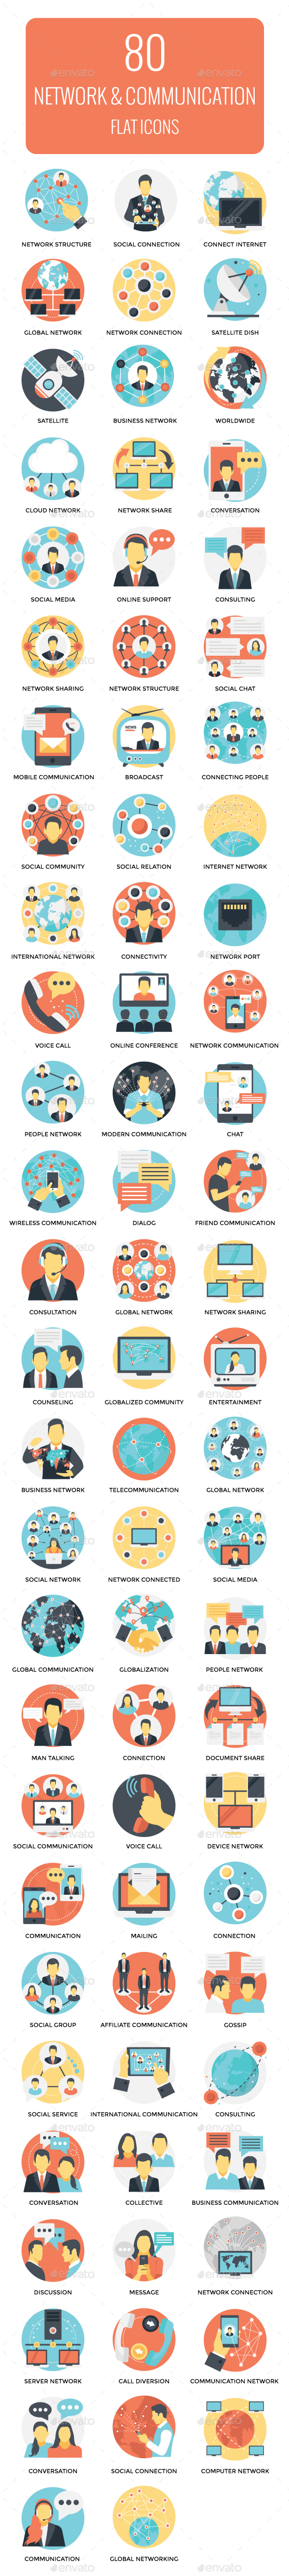 80 Networking and Communication Icon - Icons